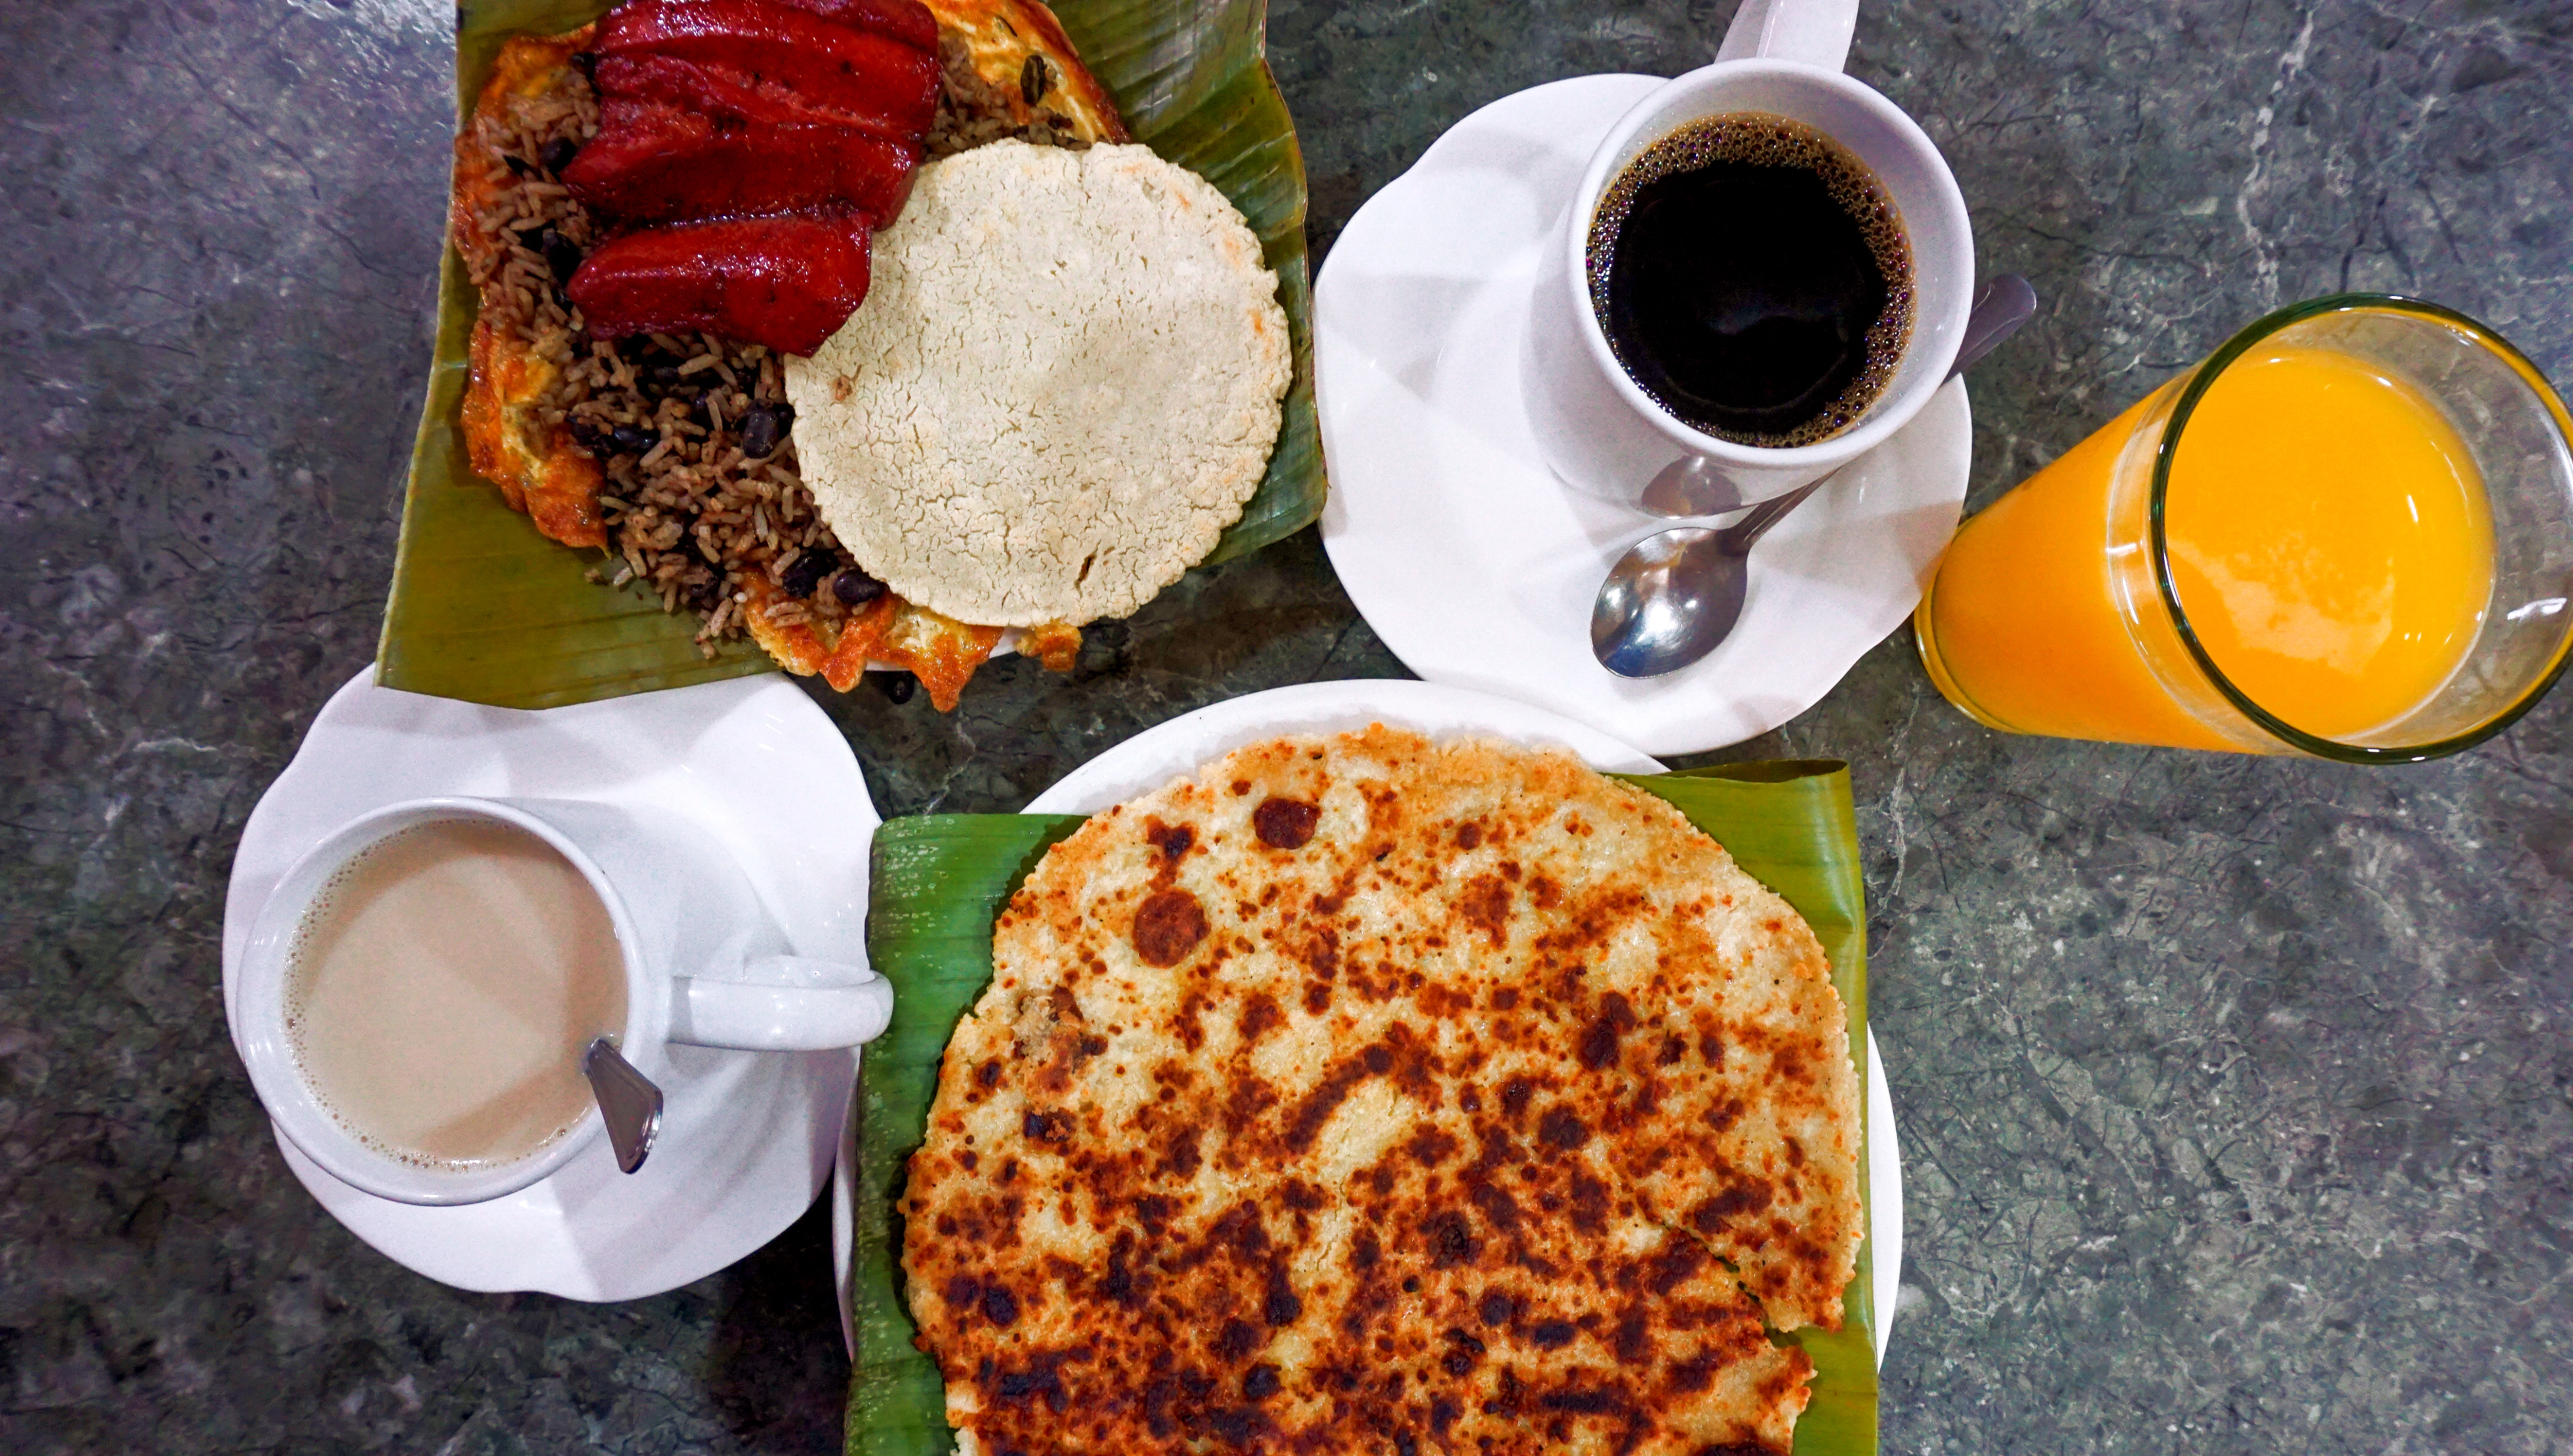 A full breakfast spread including coffee, juice, and Talapinto.